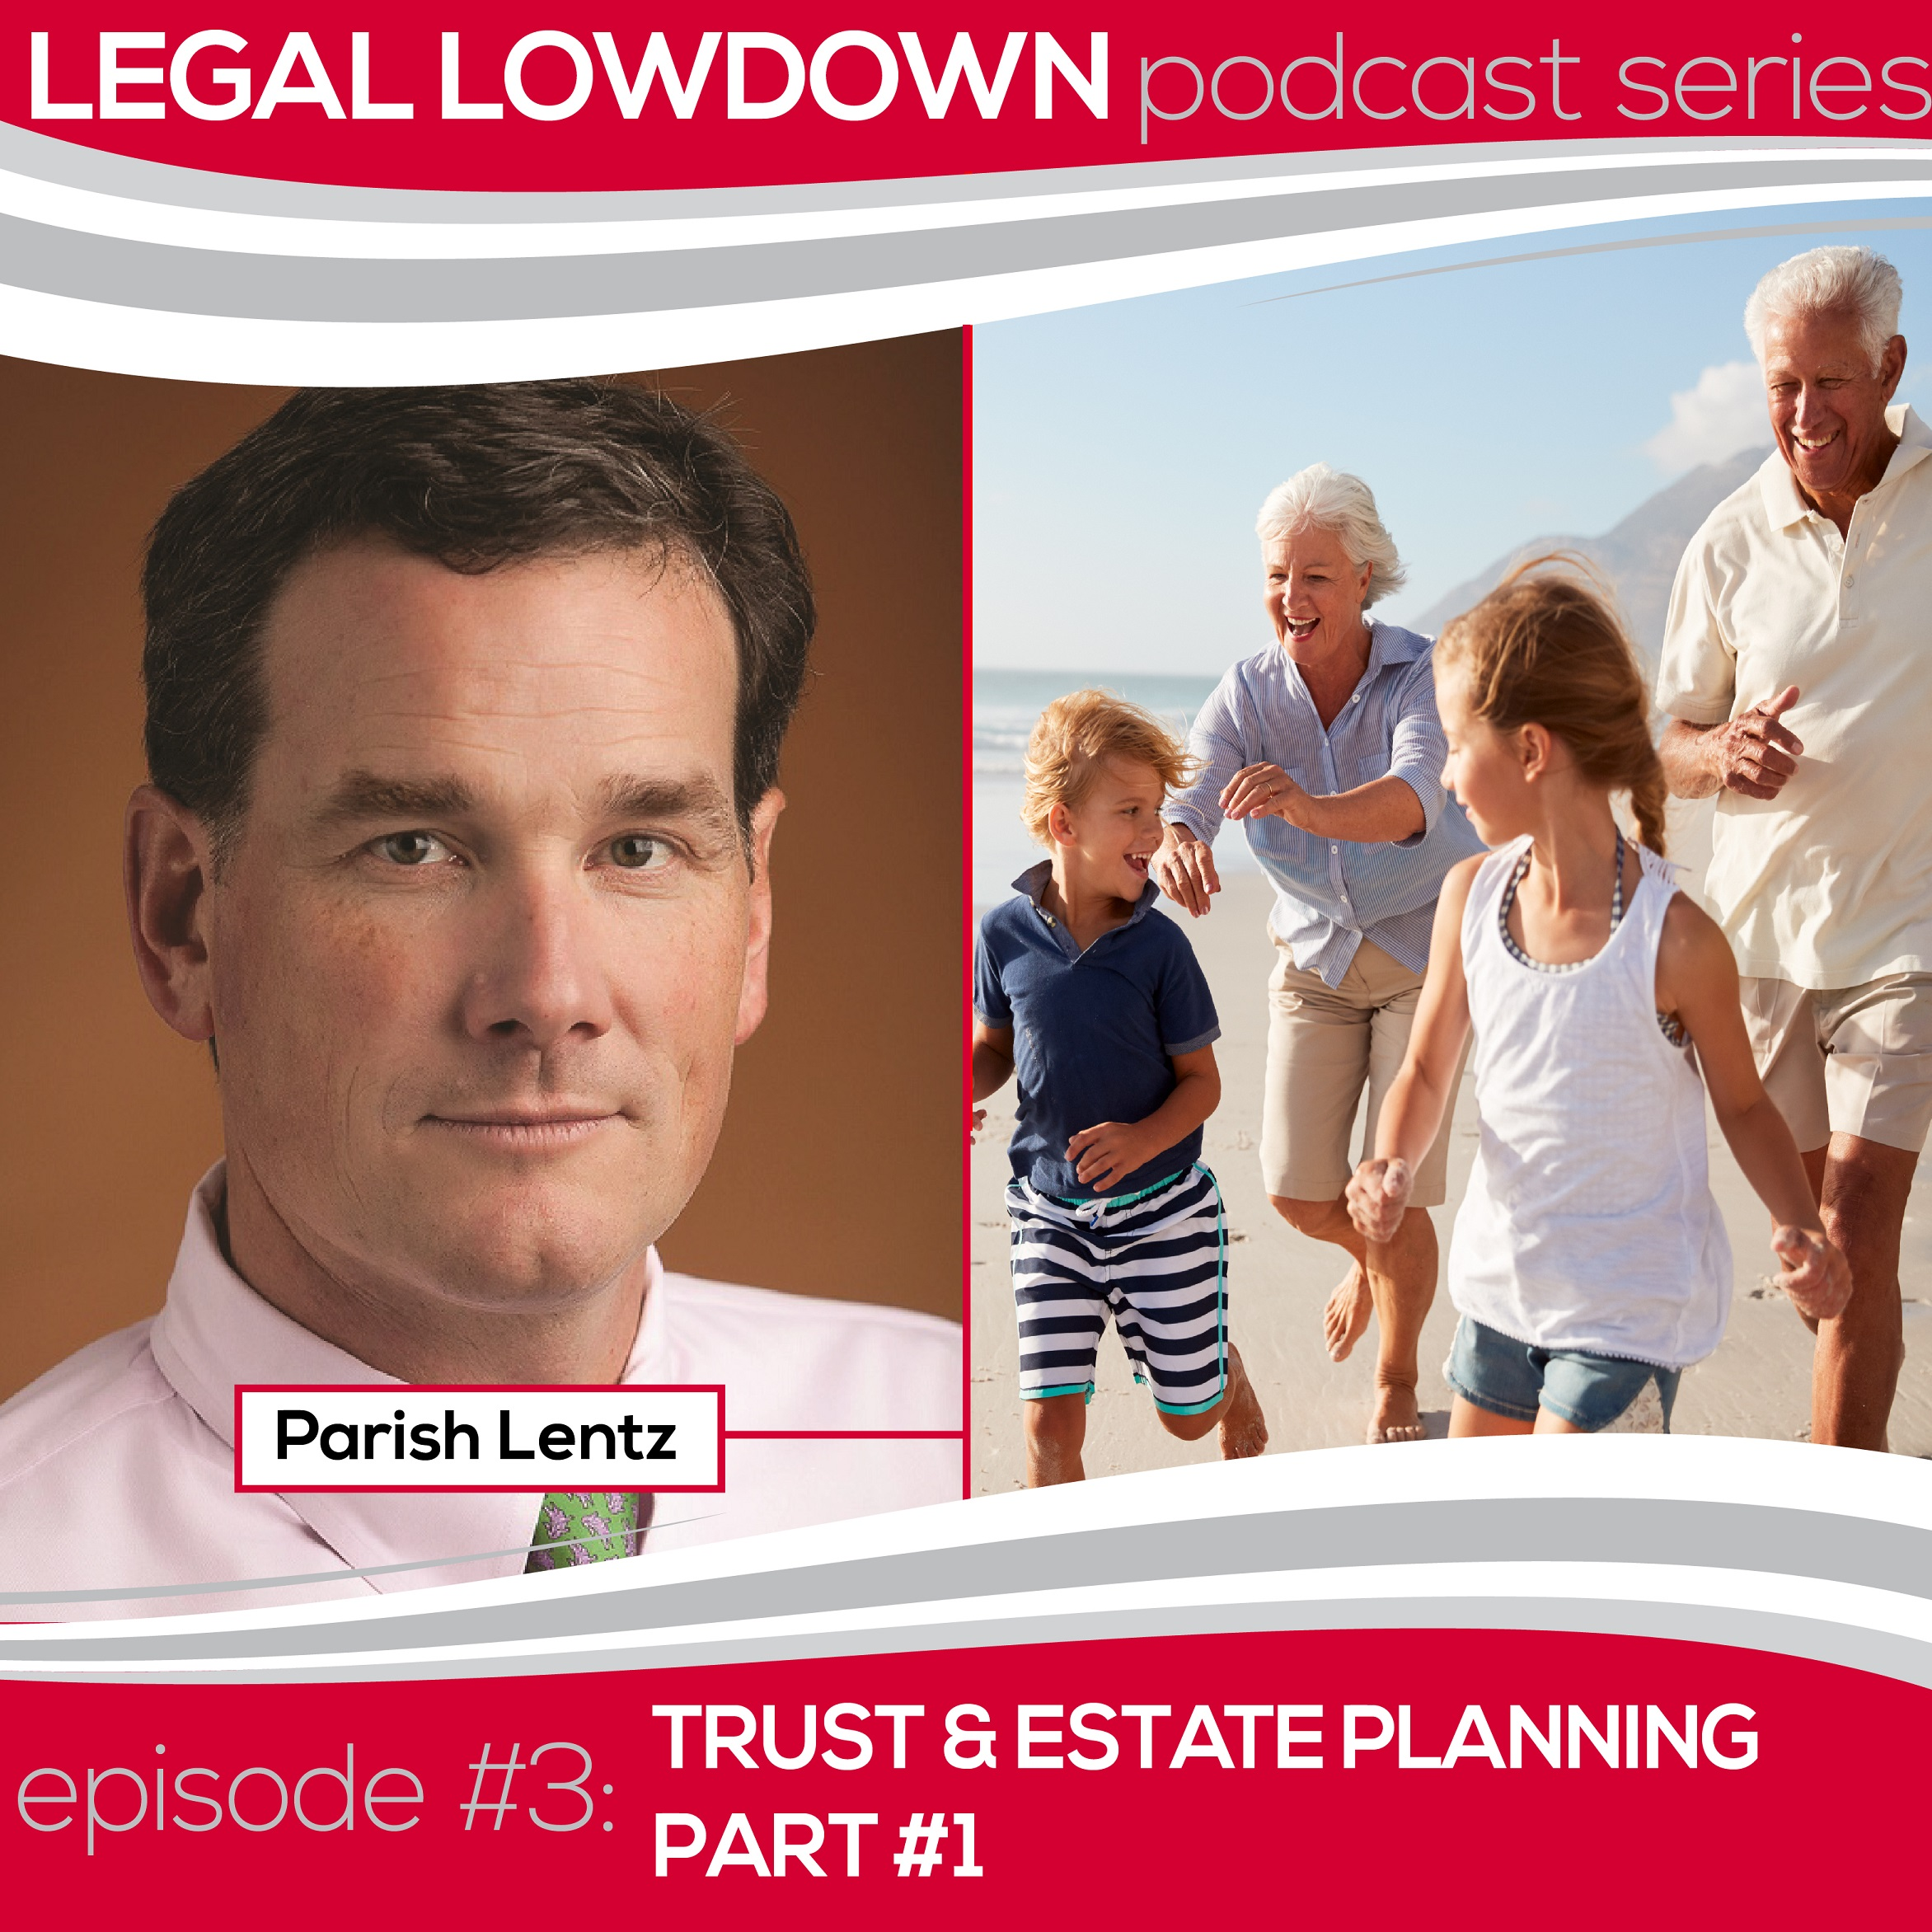 Legal Lowdown Podcast – Episode #3 – Trust & Estate Planning (Part #1)